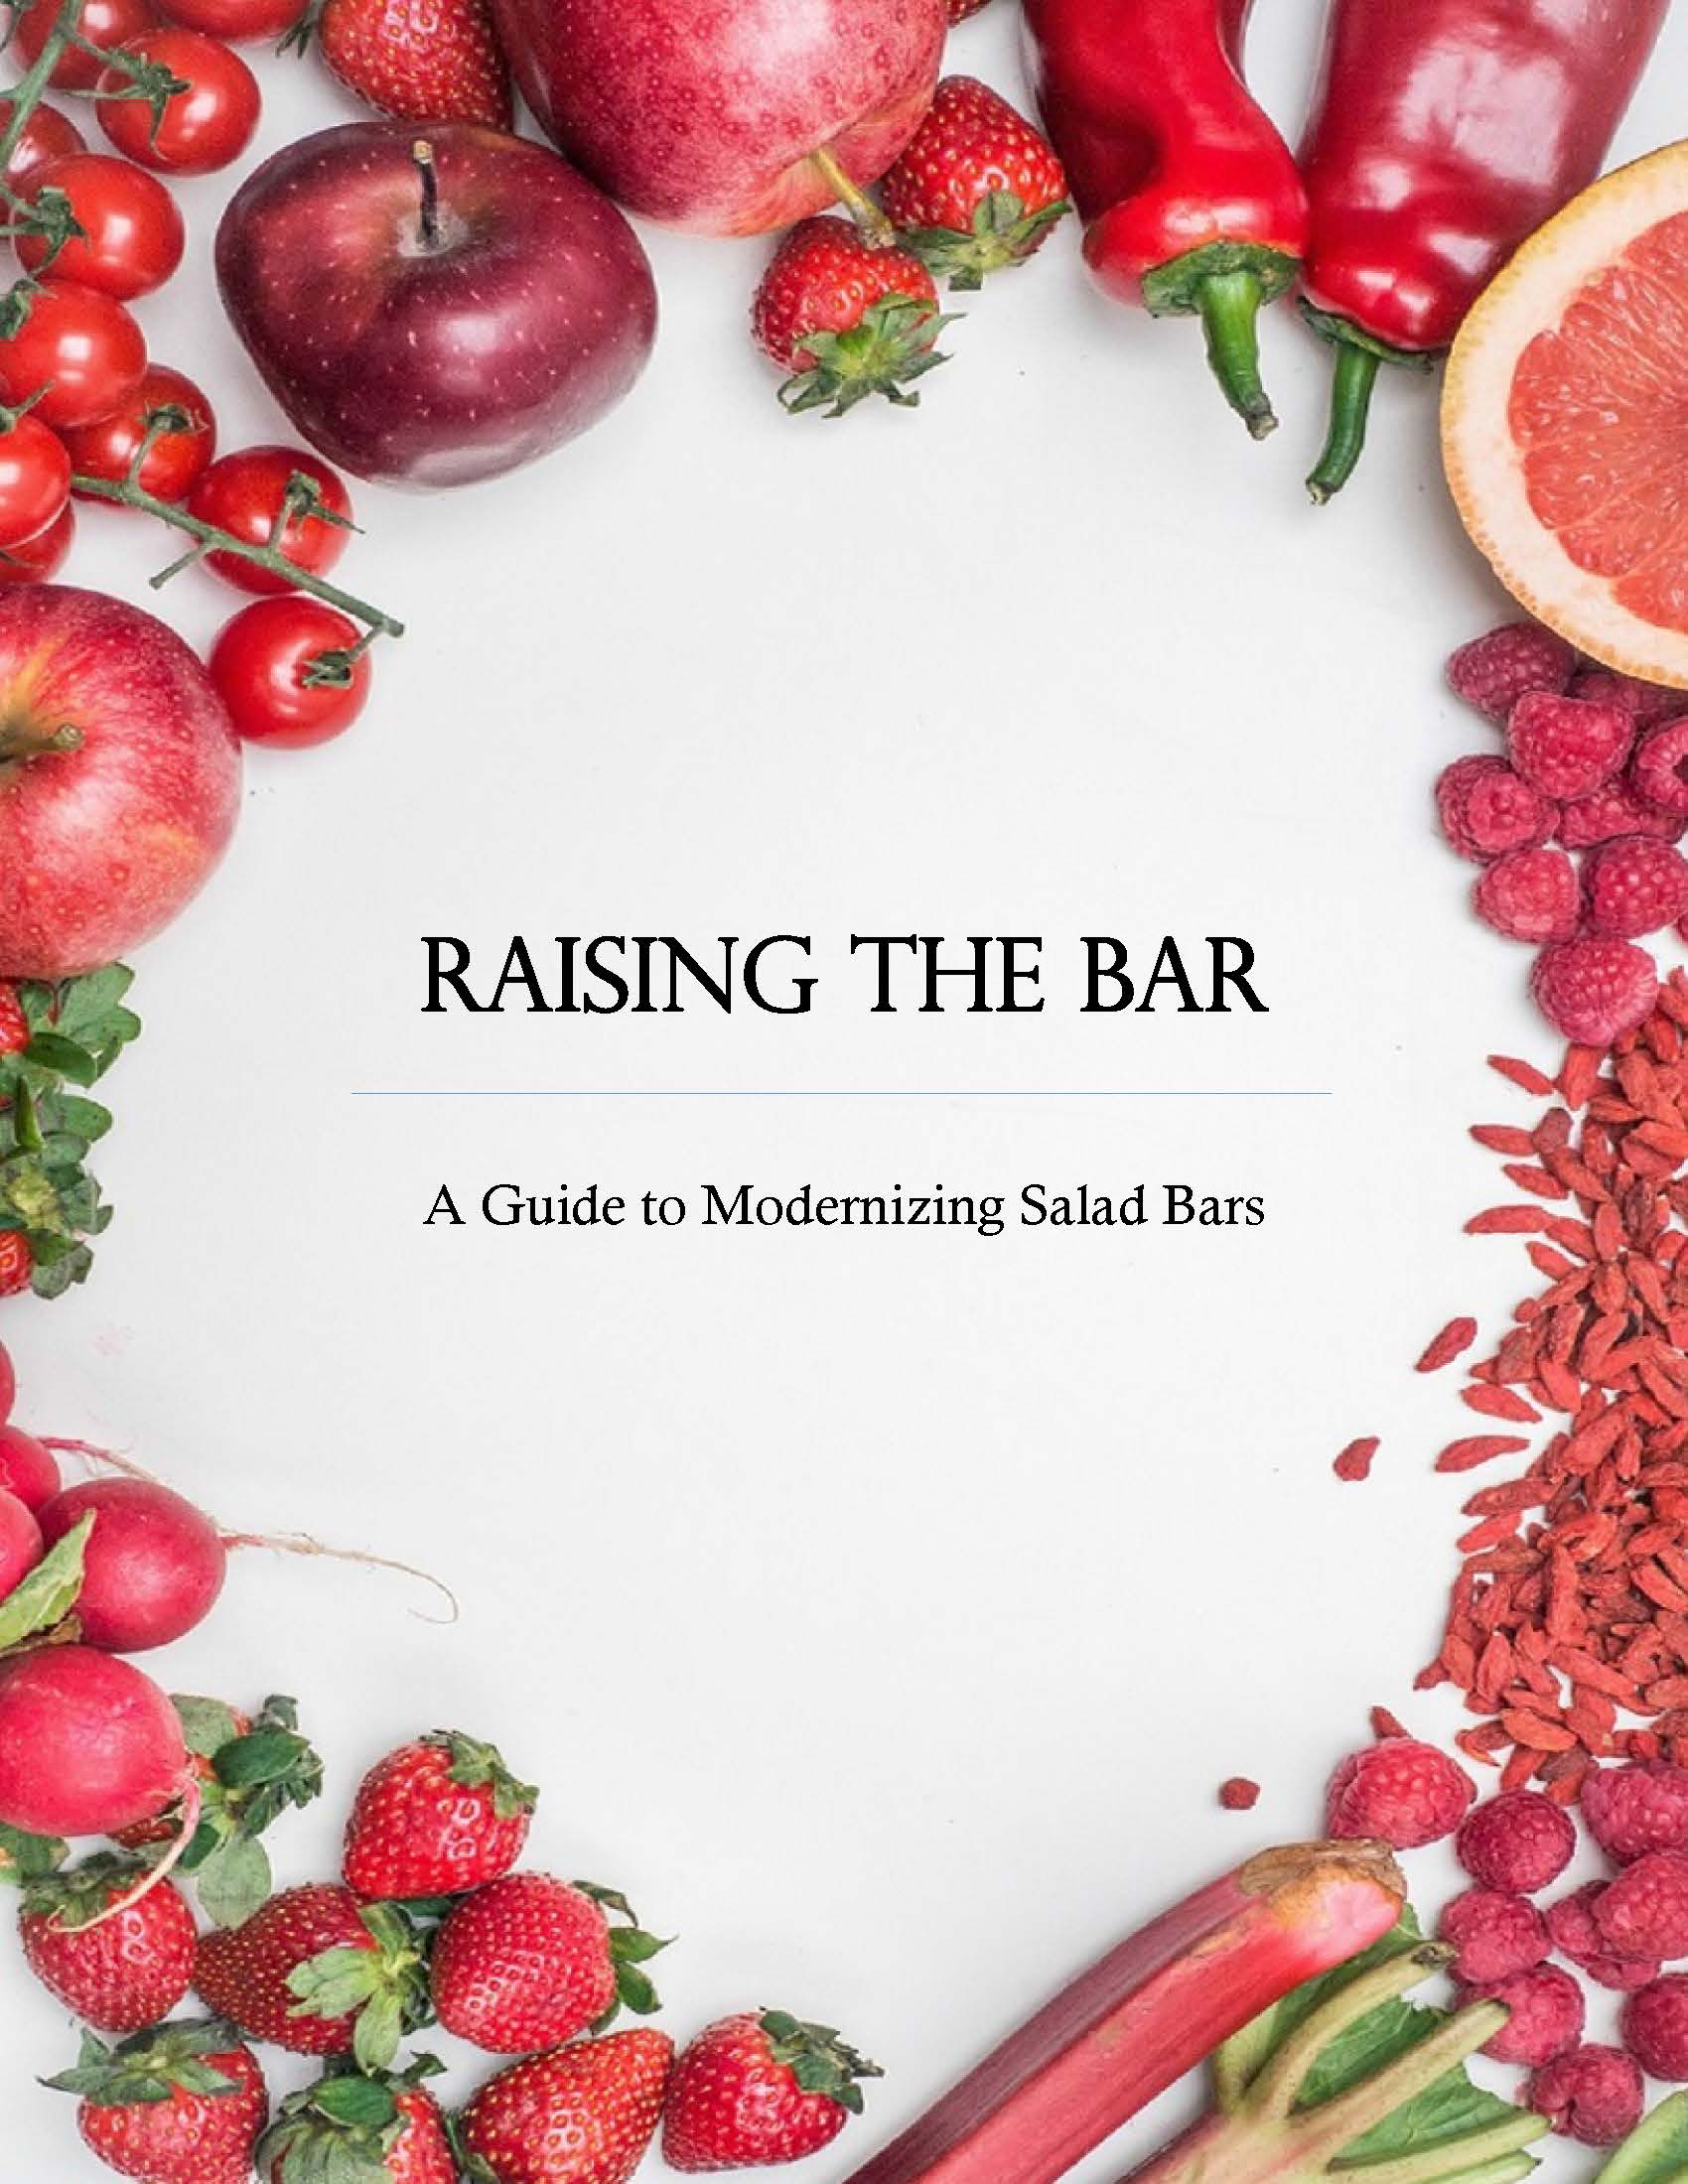 Toolkit titled Raising The Bar: A Guide to Modernizing Salad Bars